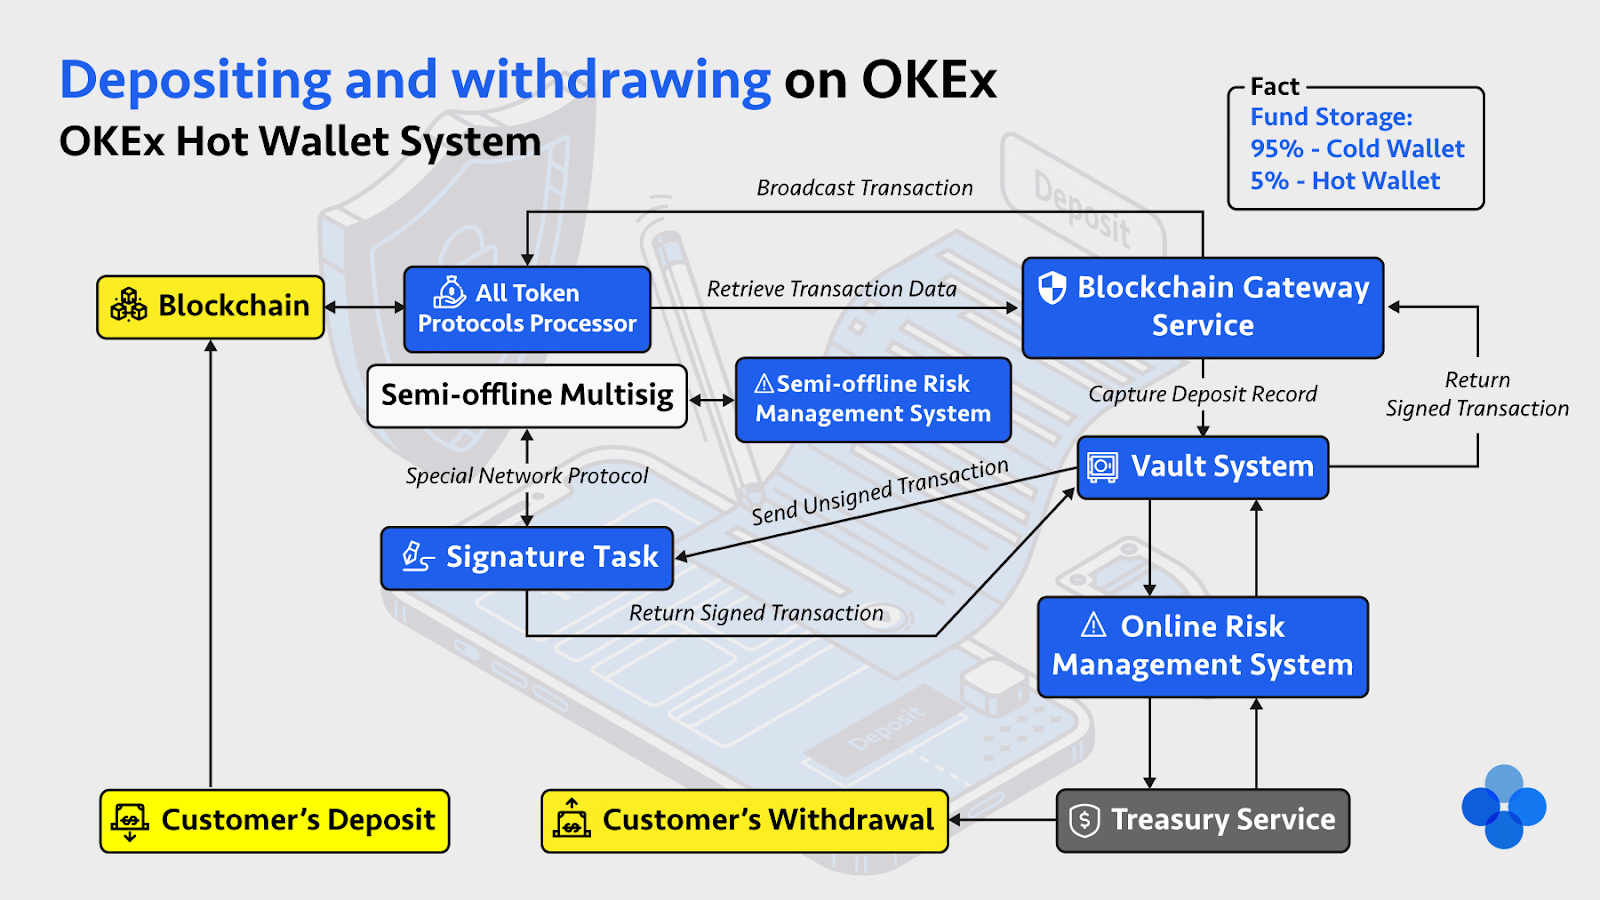 OKEx's hot wallet system